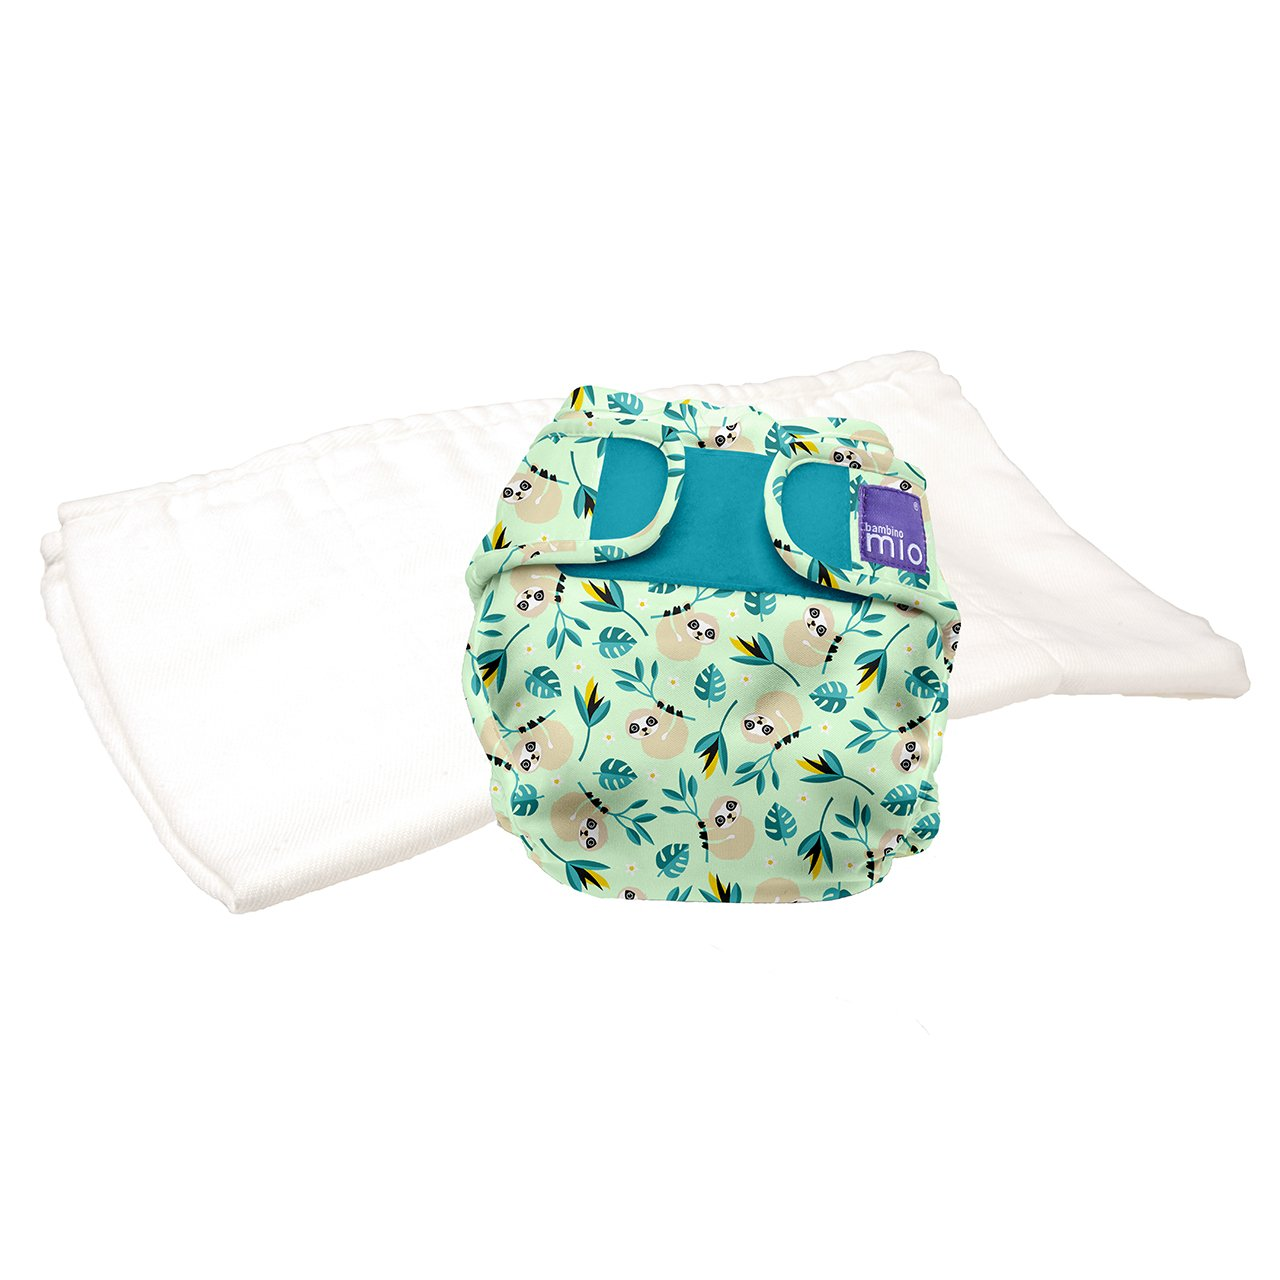 Bambino Mio Miosoft Reusable Nappy Trial Pack - White, Size 1 ( Size 1 (<9kg) TPMS1 A